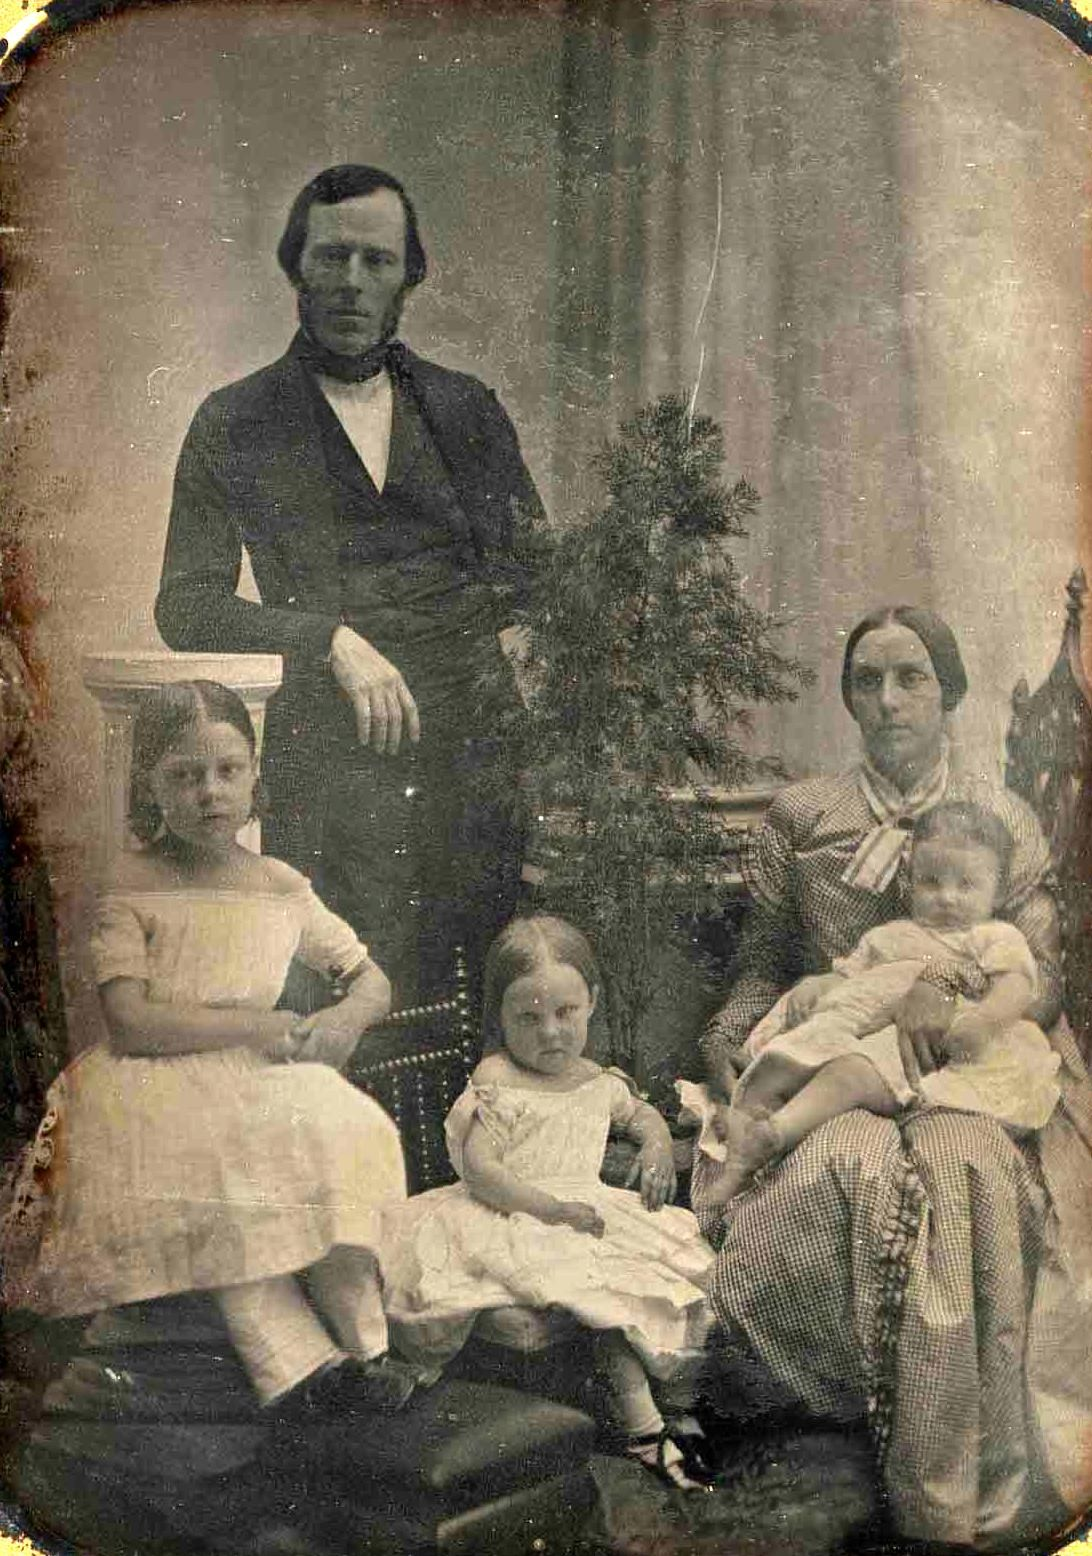 Daguerreotype portrait of the Tobey family, c. 1840′s. By Southworth and Hawes.